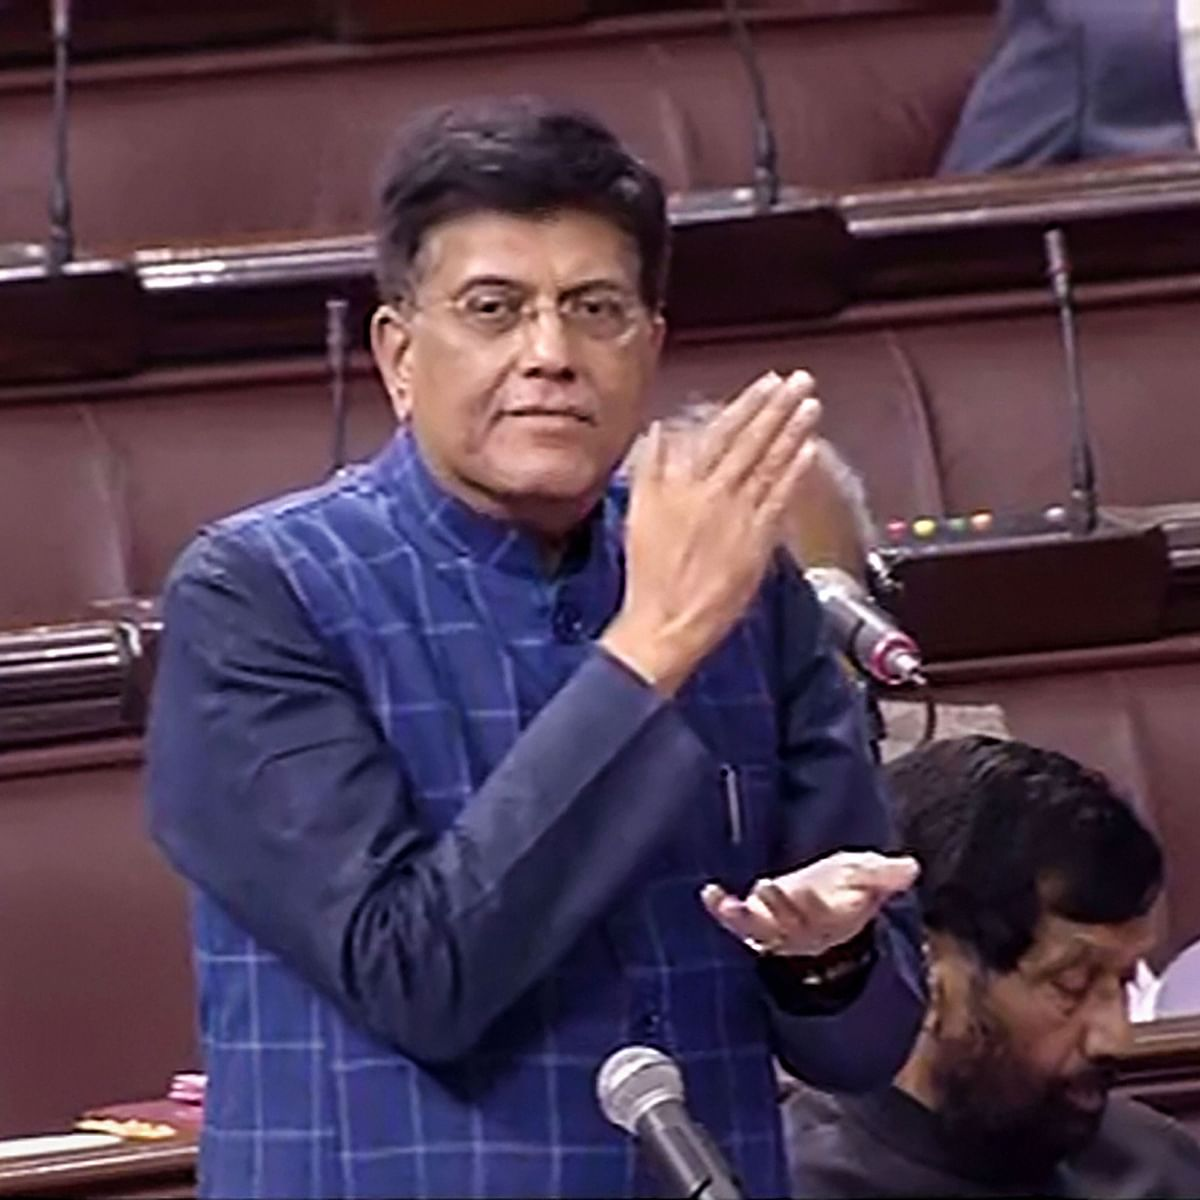 No passenger deaths due to train accidents in nearly 22 months: Piyush Goyal